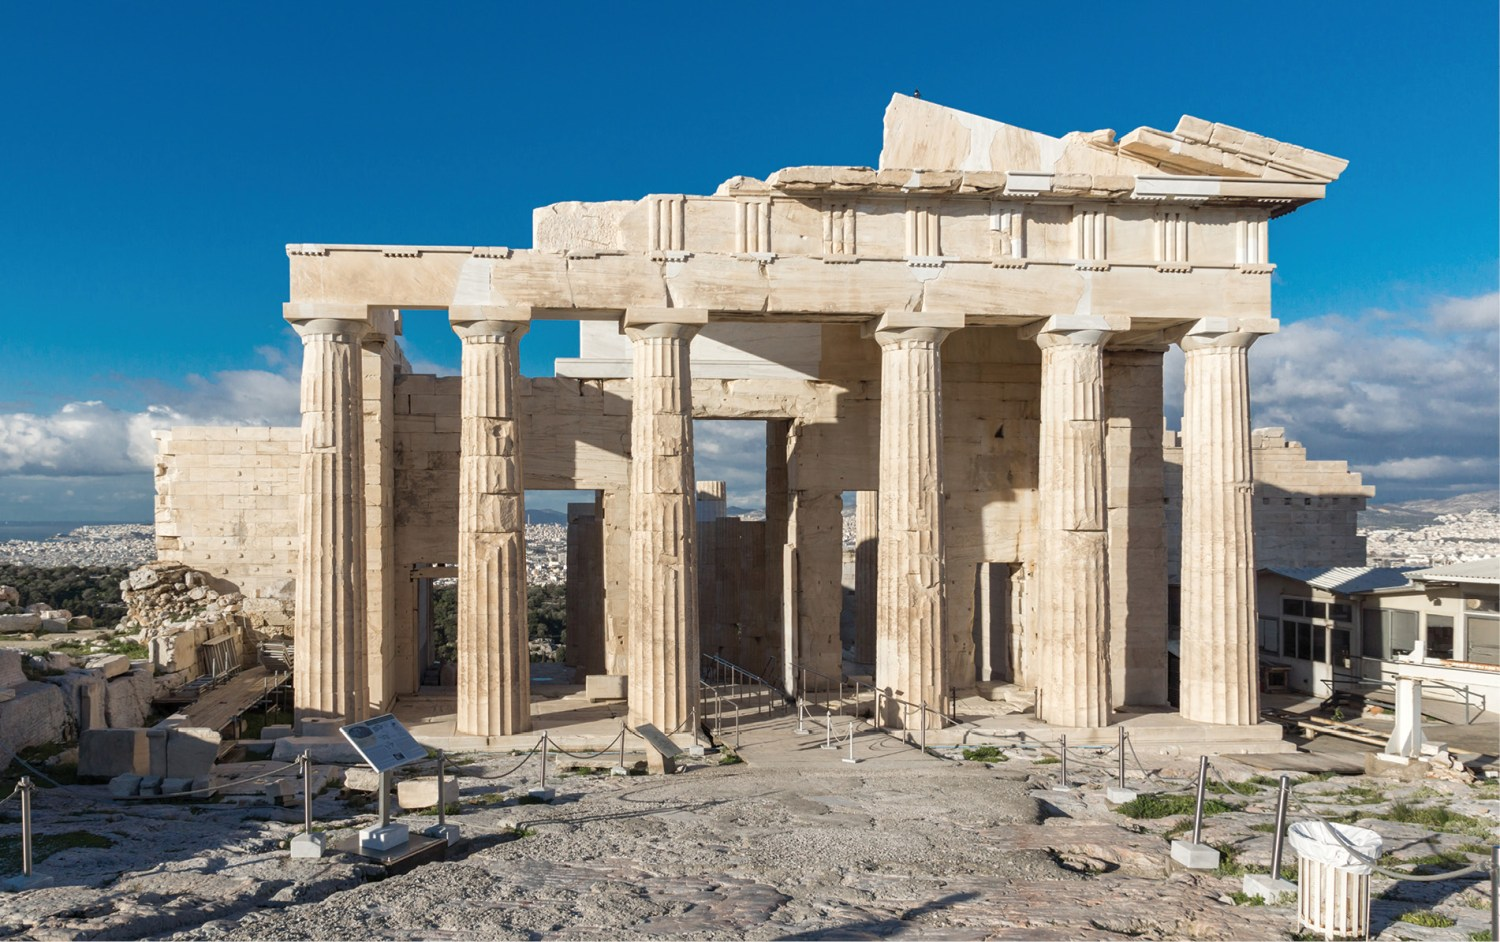 ABOVE The Propylaea, the monumental gateway to the Acropolis, was reoriented in the 5th century BC to face towards the island of Salamis.